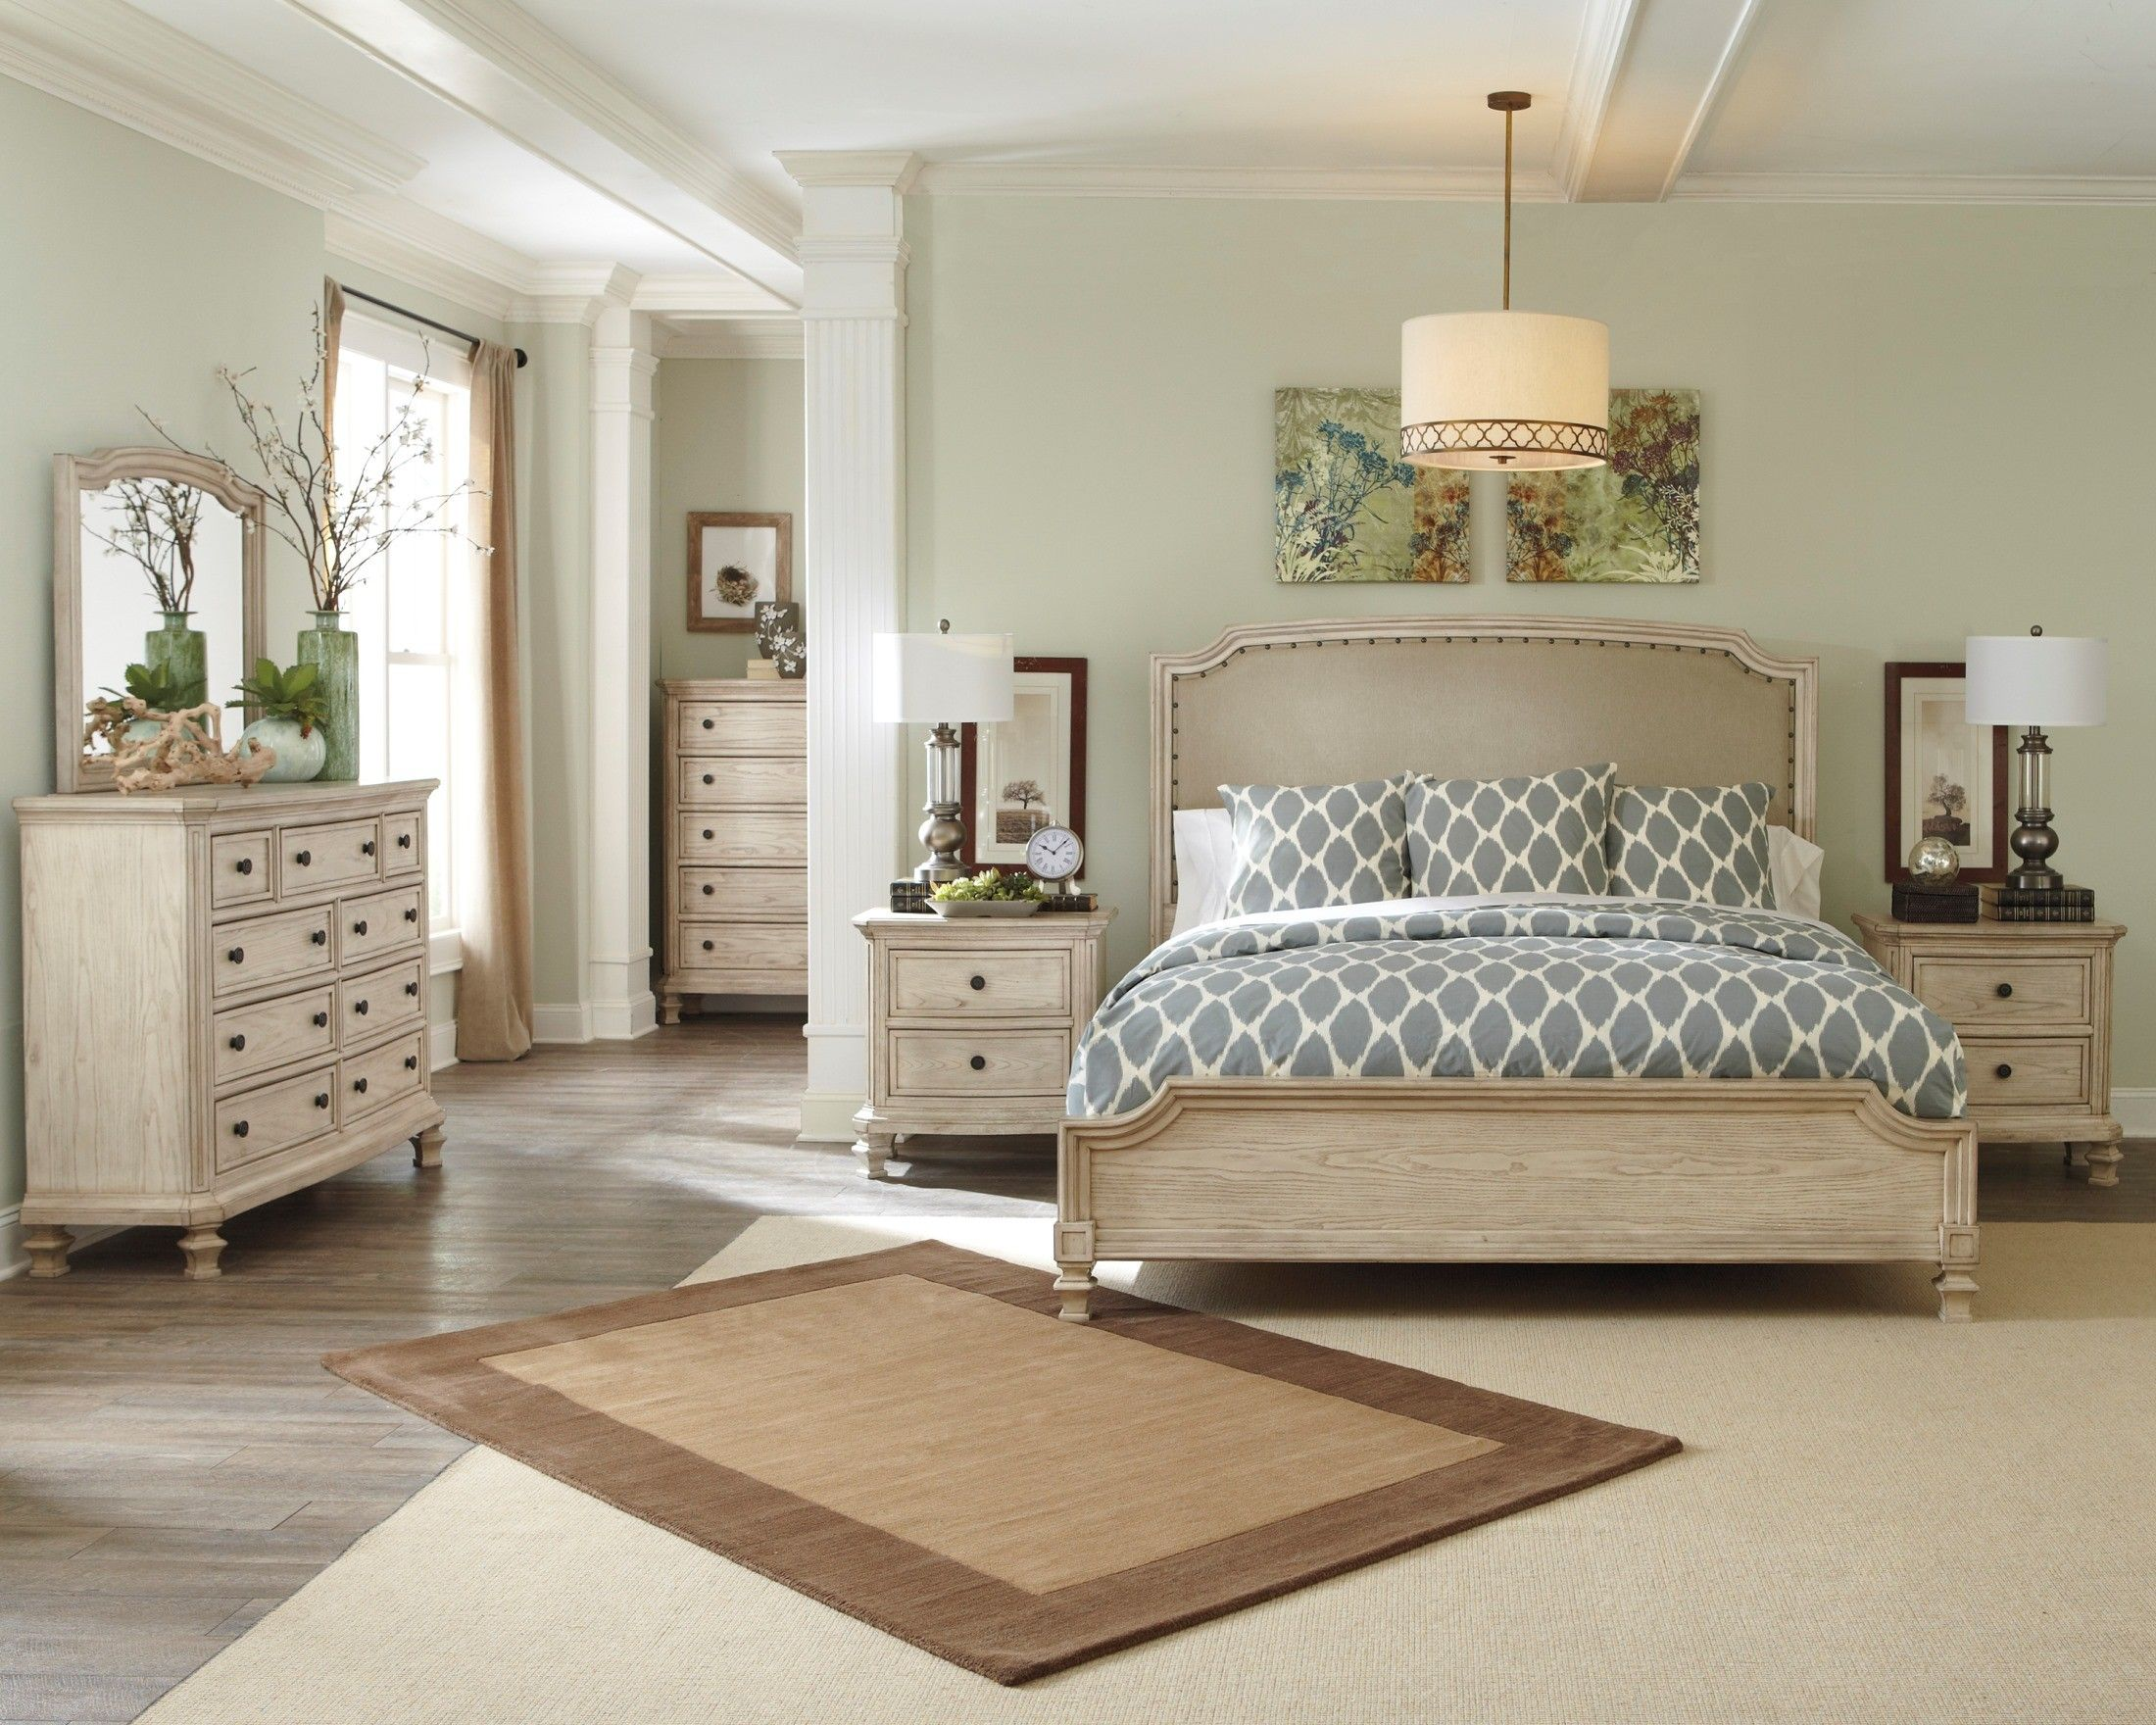 Queen Bedroom Furniture Sets 17 Best Ideas About Bedroom Furniture Sets On Pinterest Master